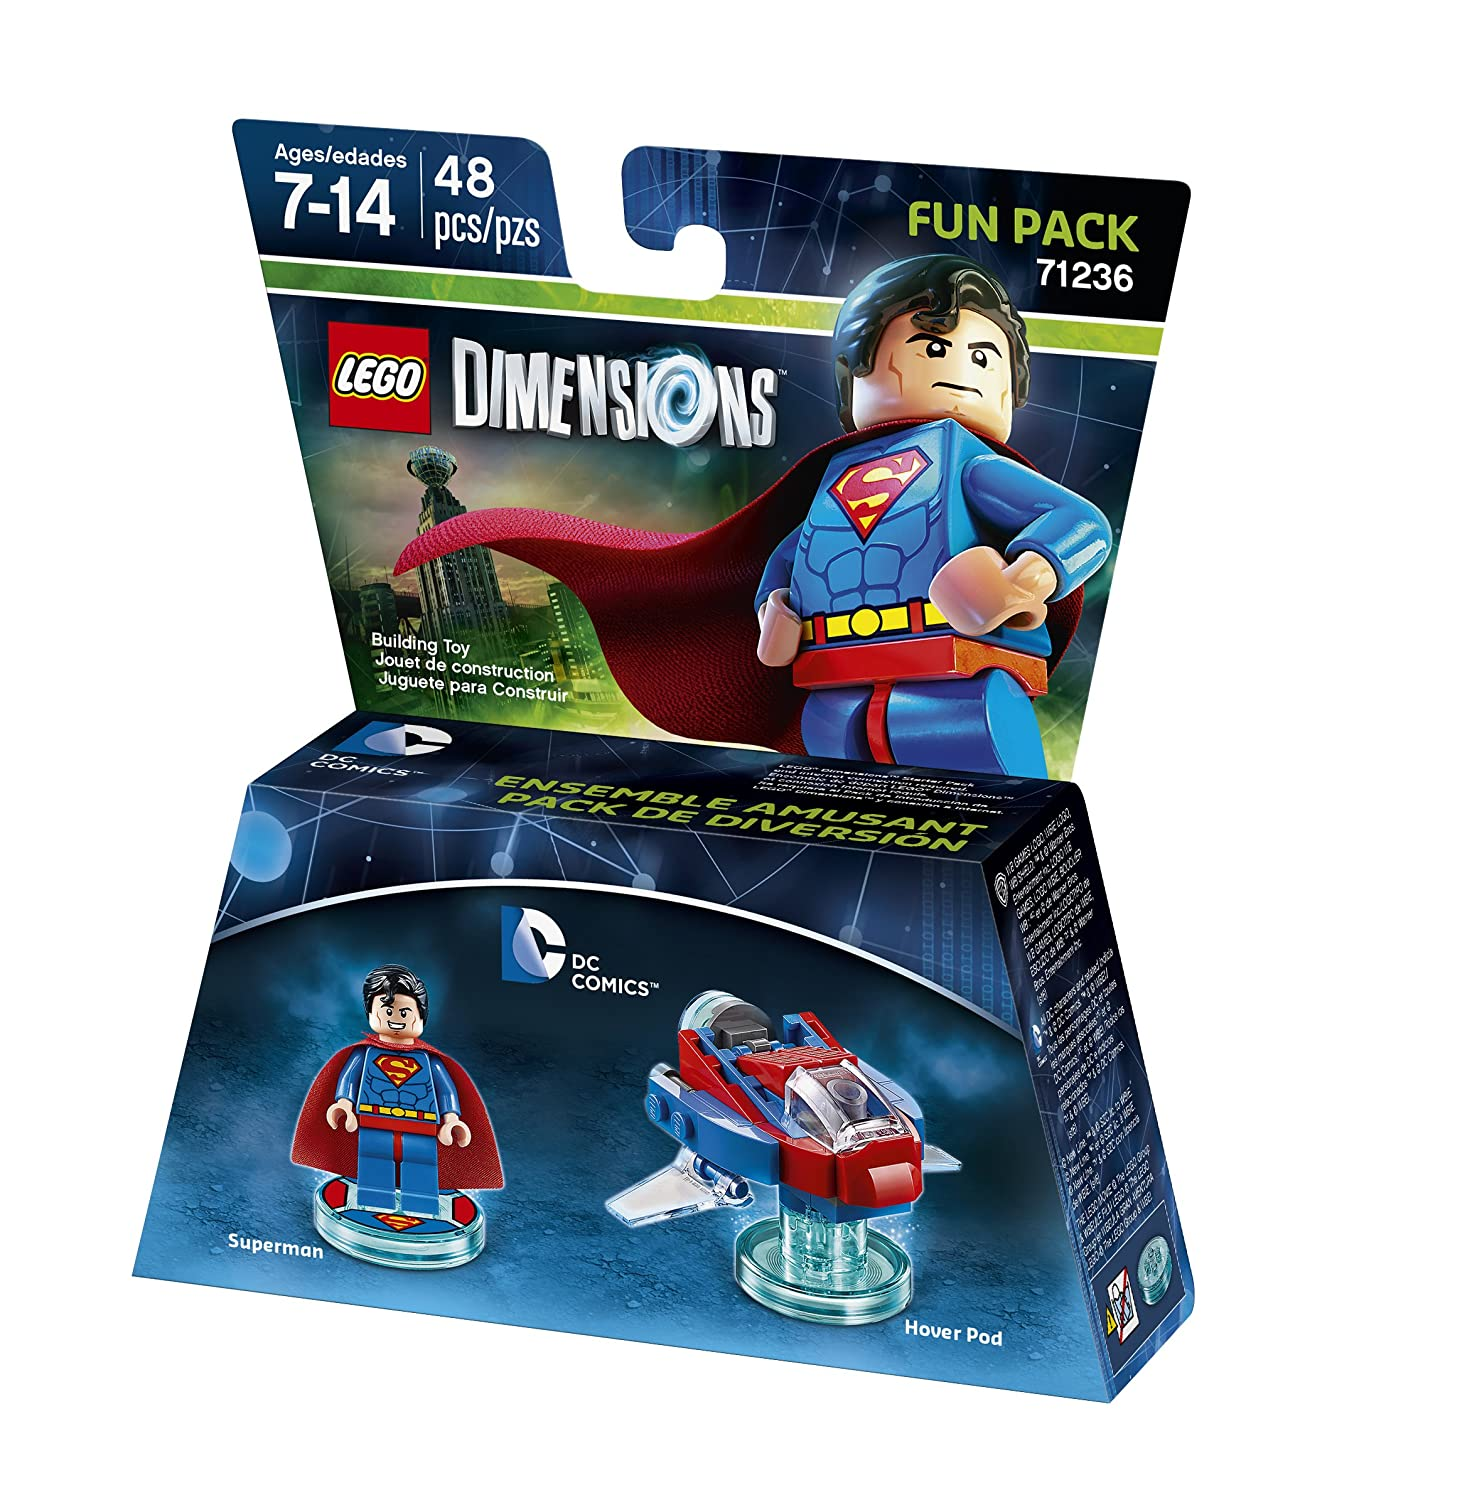 DC Superman Fun Pack LEGO Dimensions Warner 1000561500